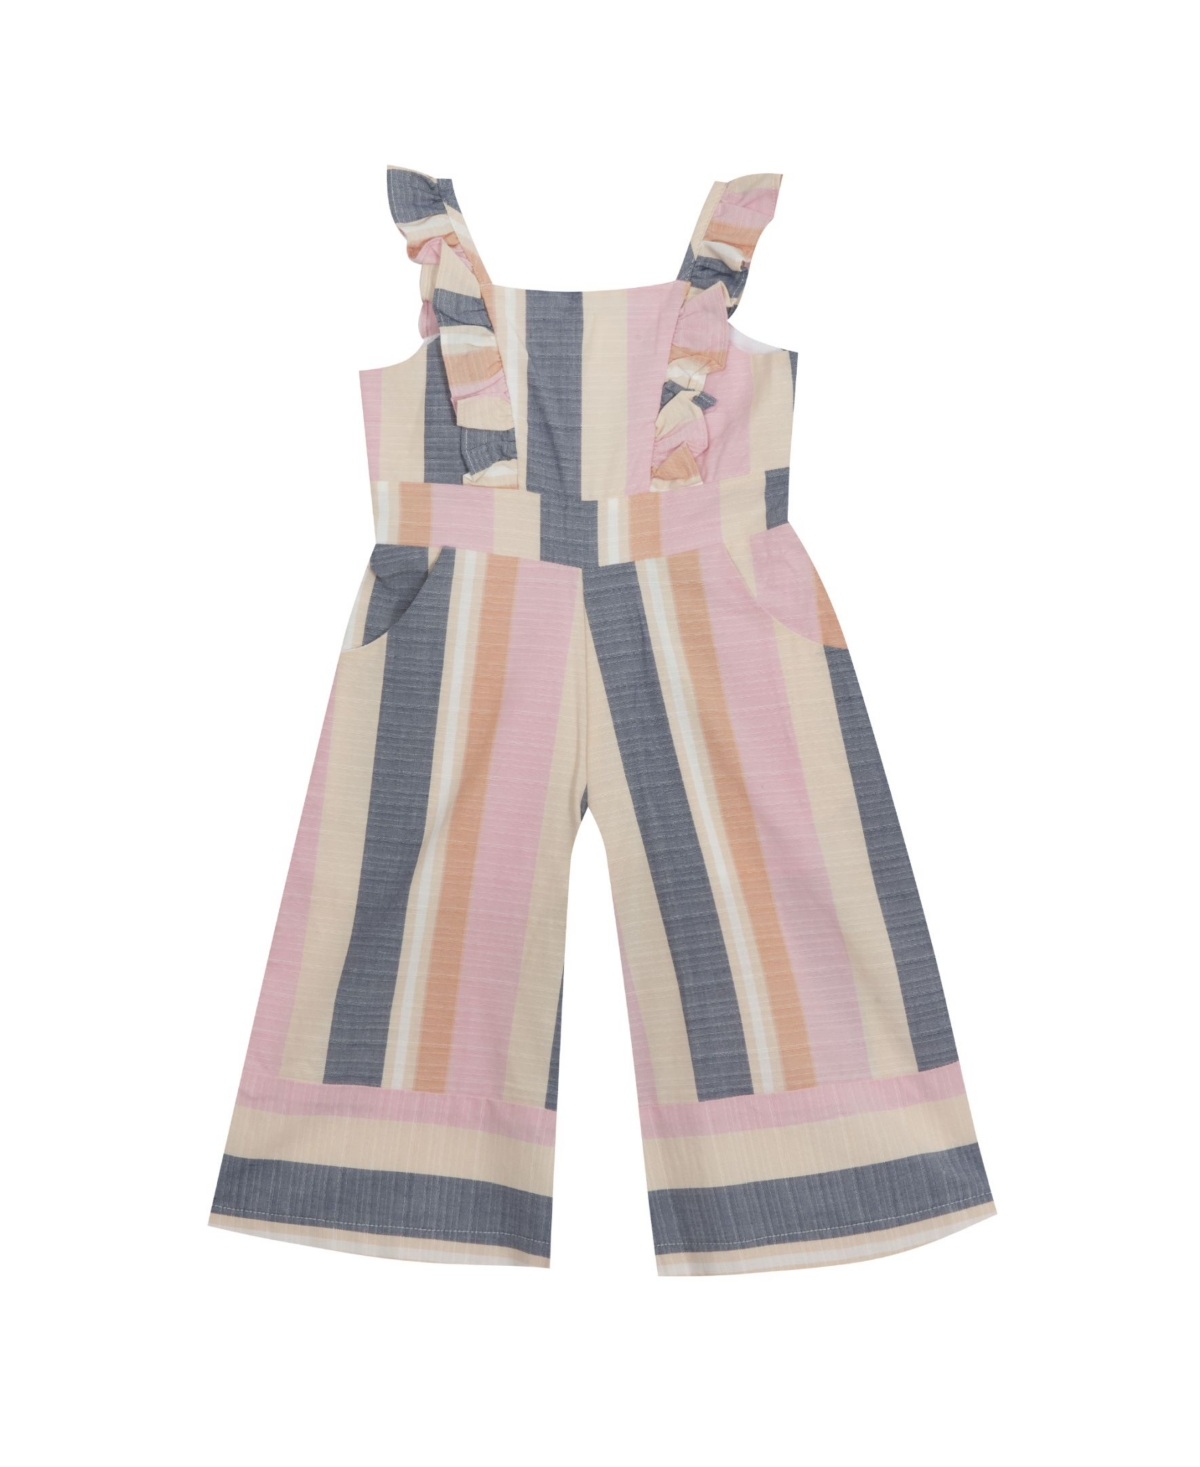 18798087 fpx - Kids & Baby Clothing